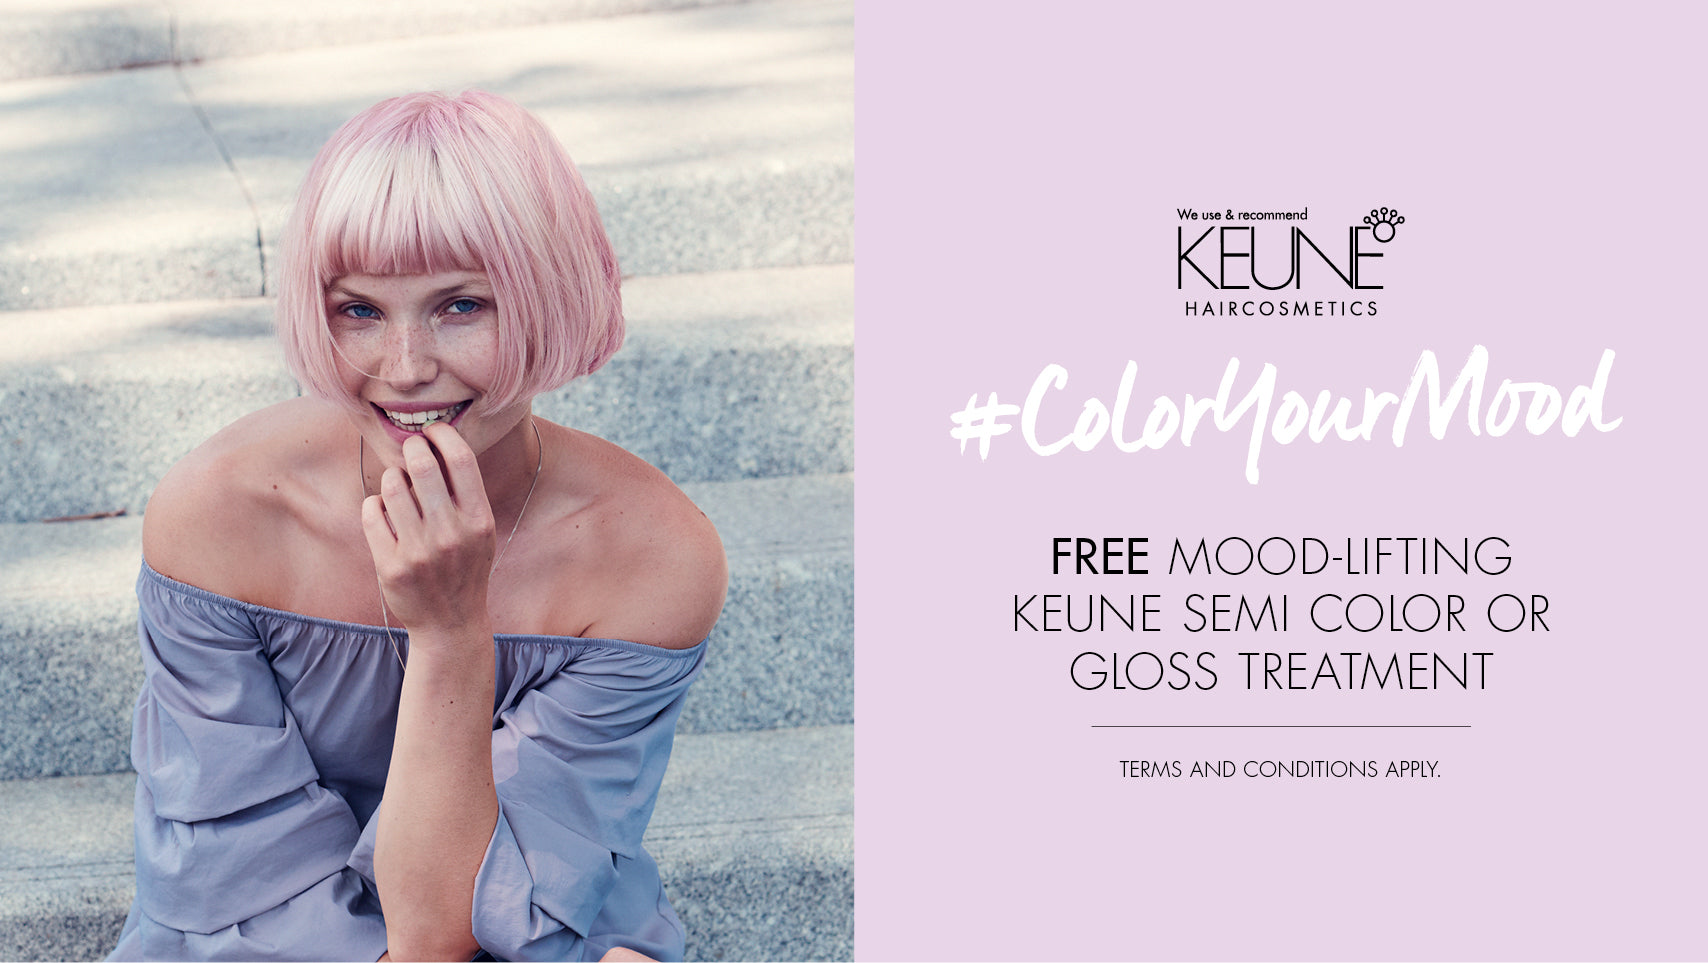 VIP FREE SEMI HAIR COLOUR DAY